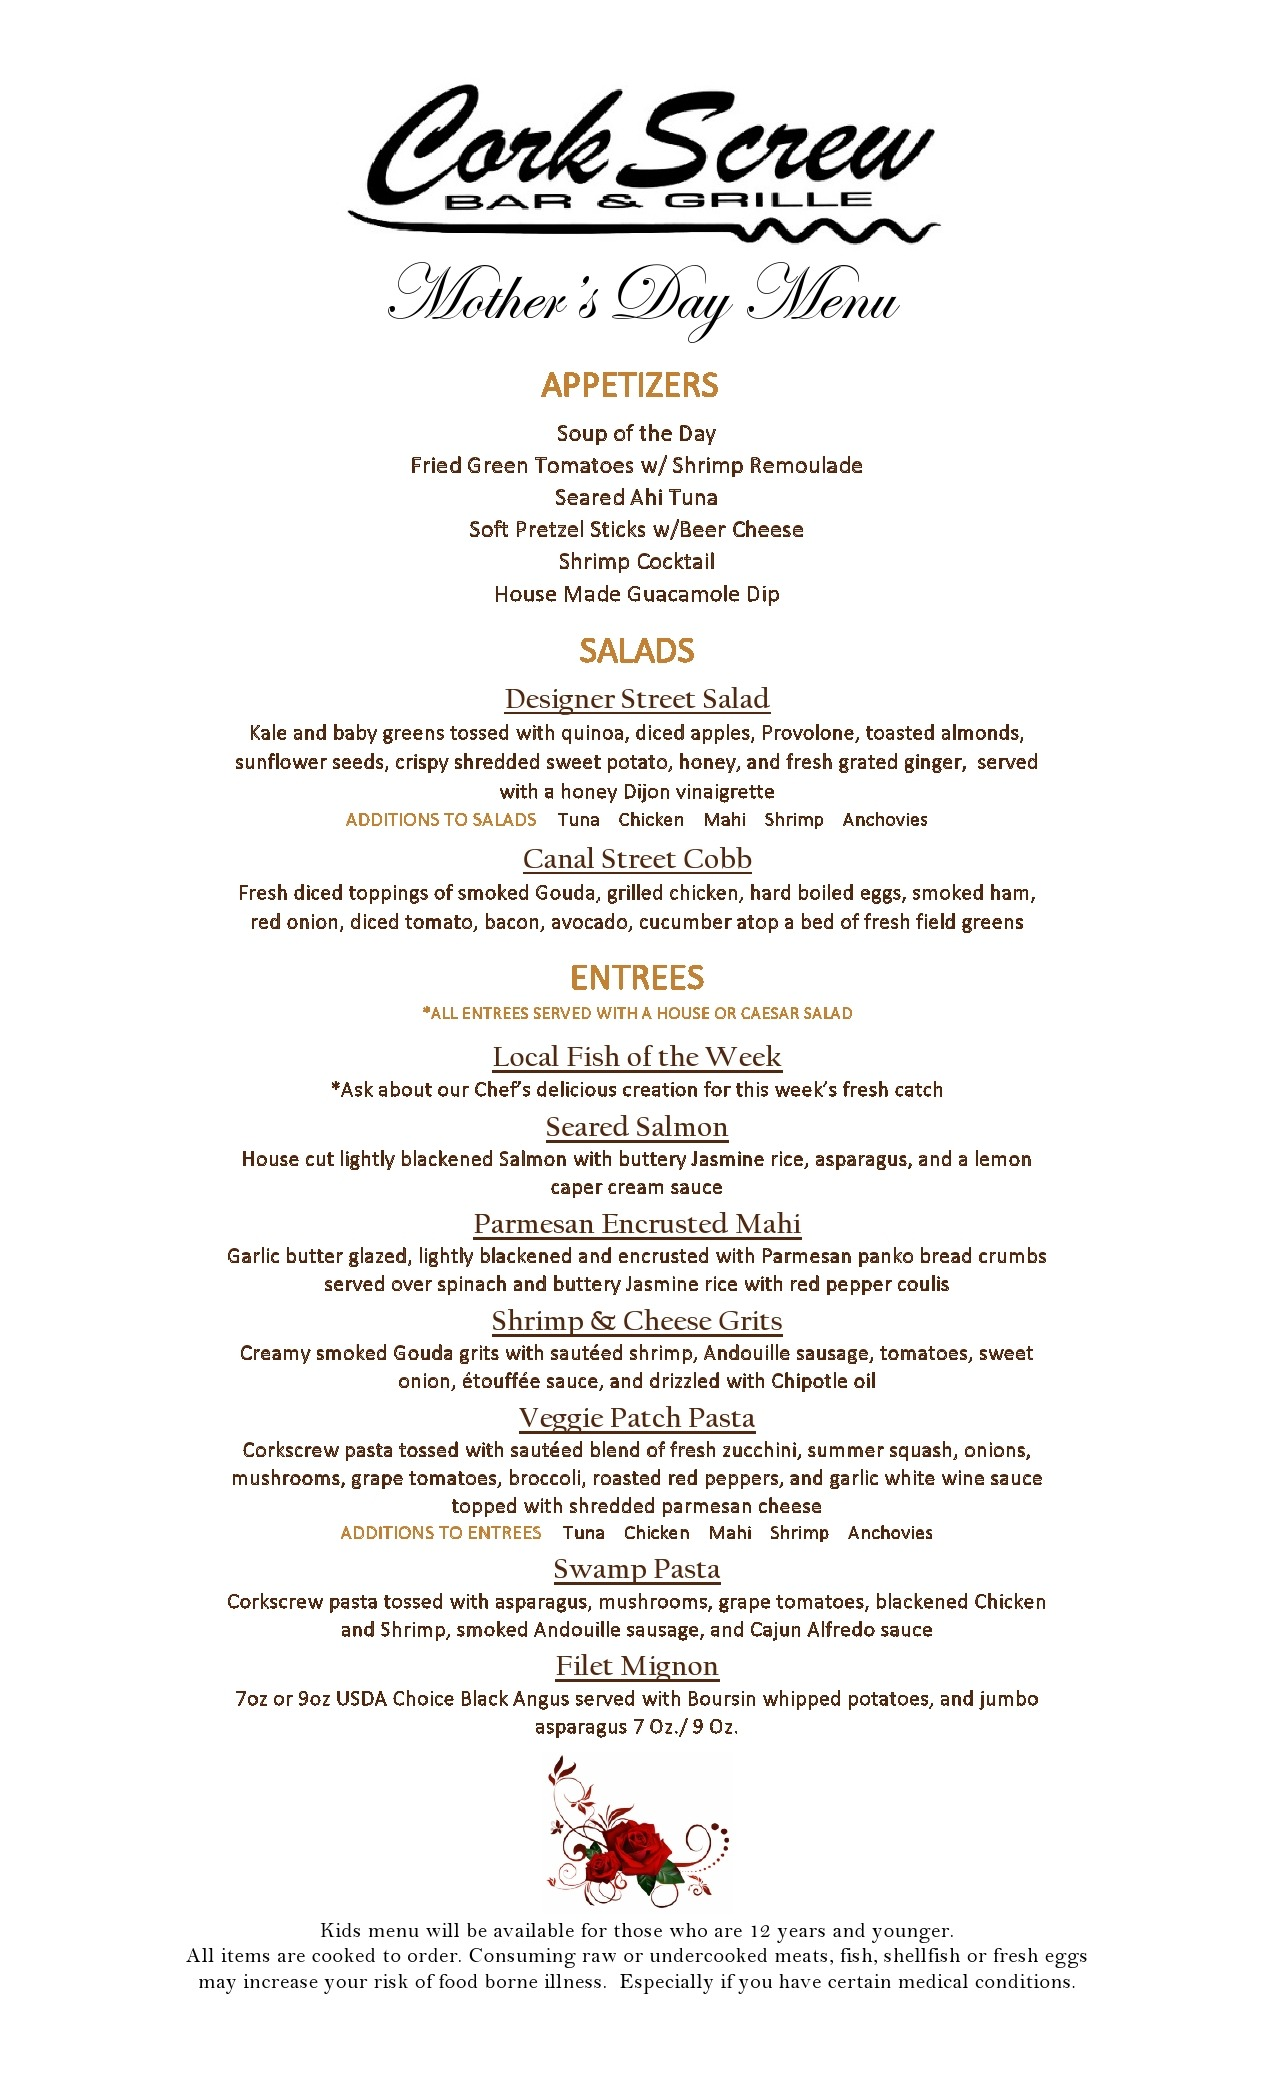 Mother's Day Dinner Menu 2019 - No Prices JPG1 - The